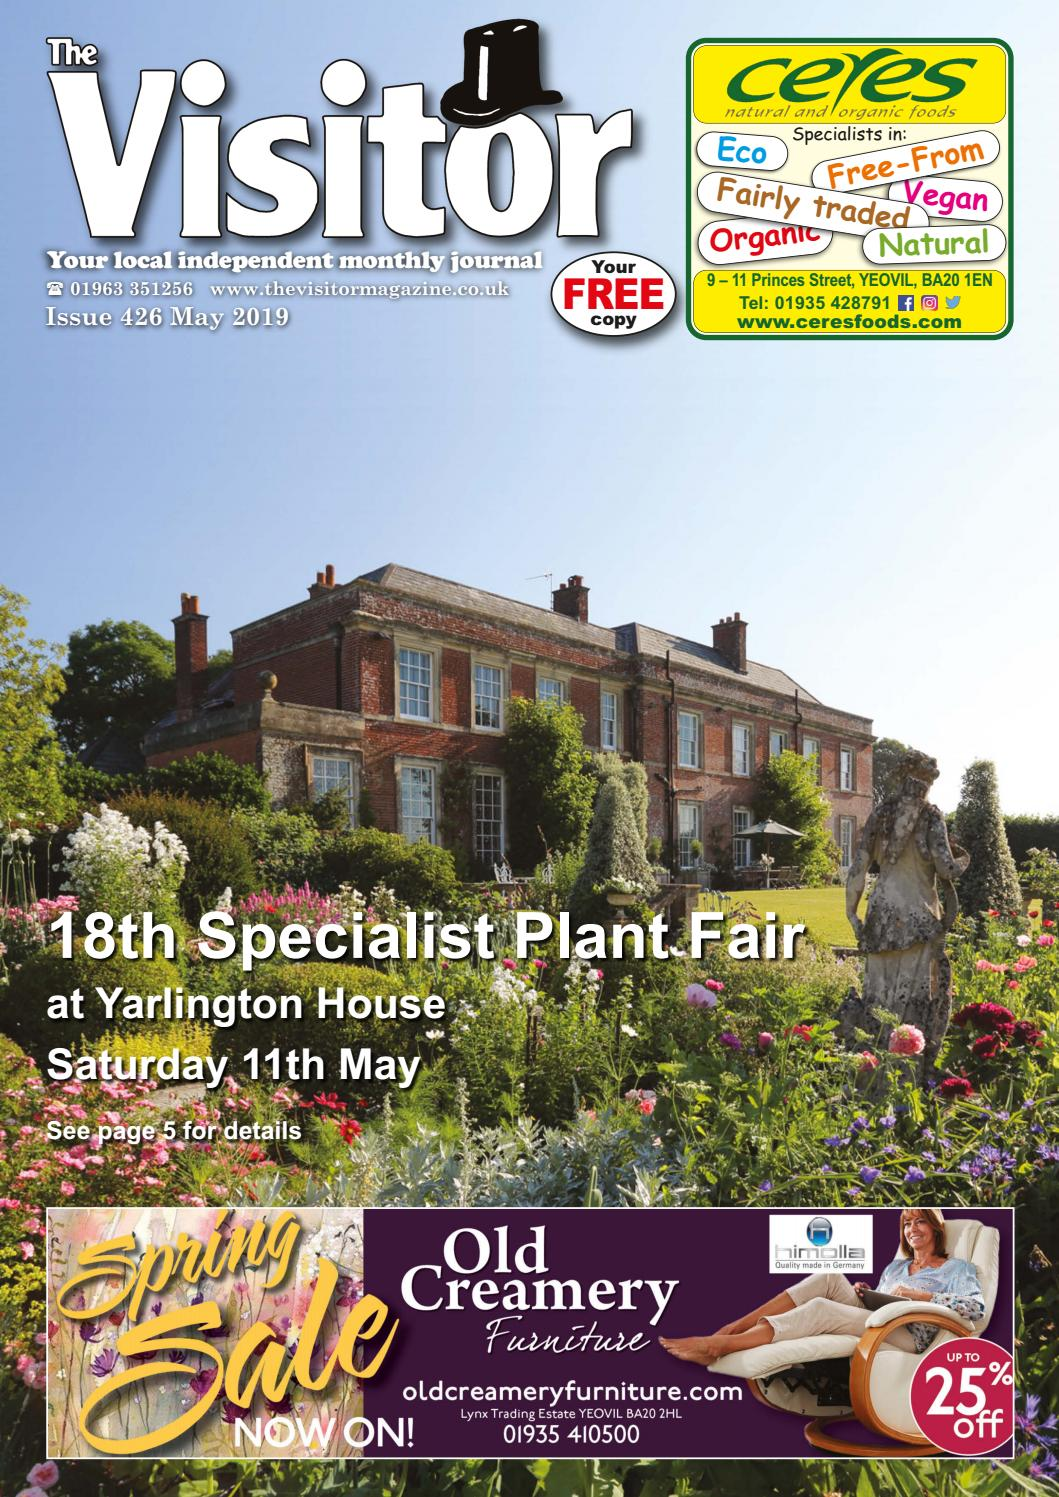 the visitor magazine issue 426 may 2019the visitor